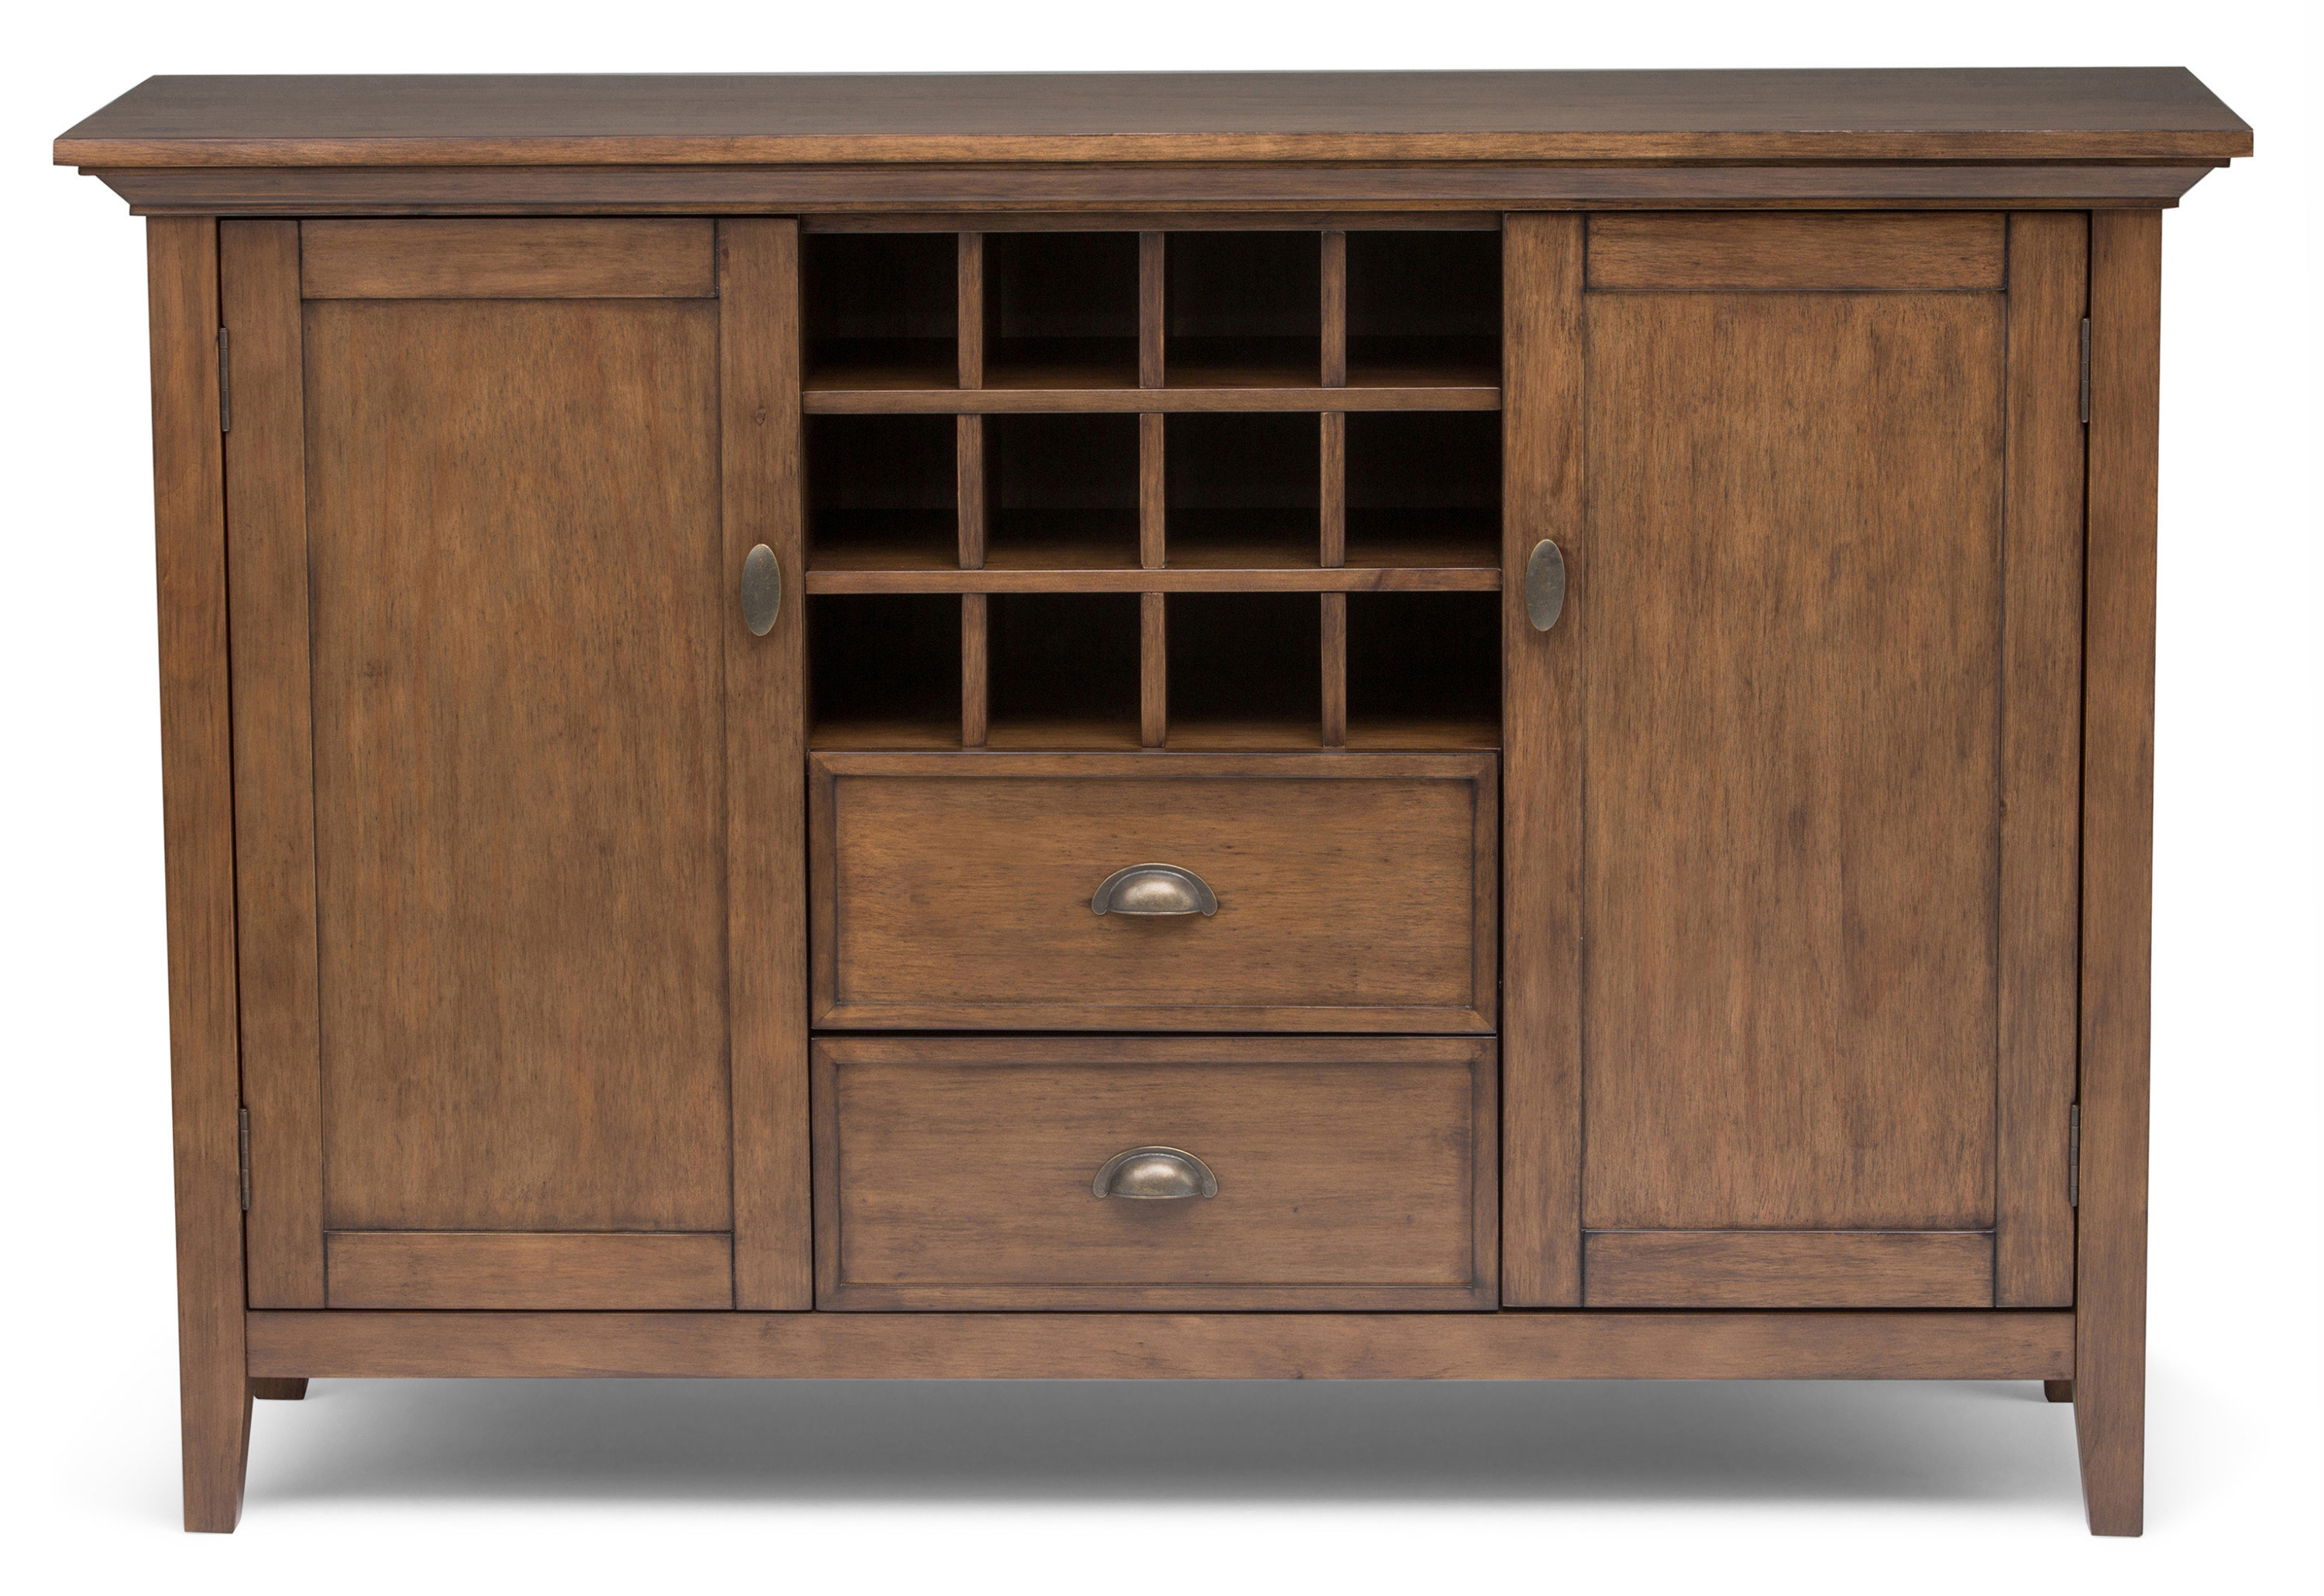 Amatury Sideboard With Regard To Perez Sideboards (View 9 of 20)